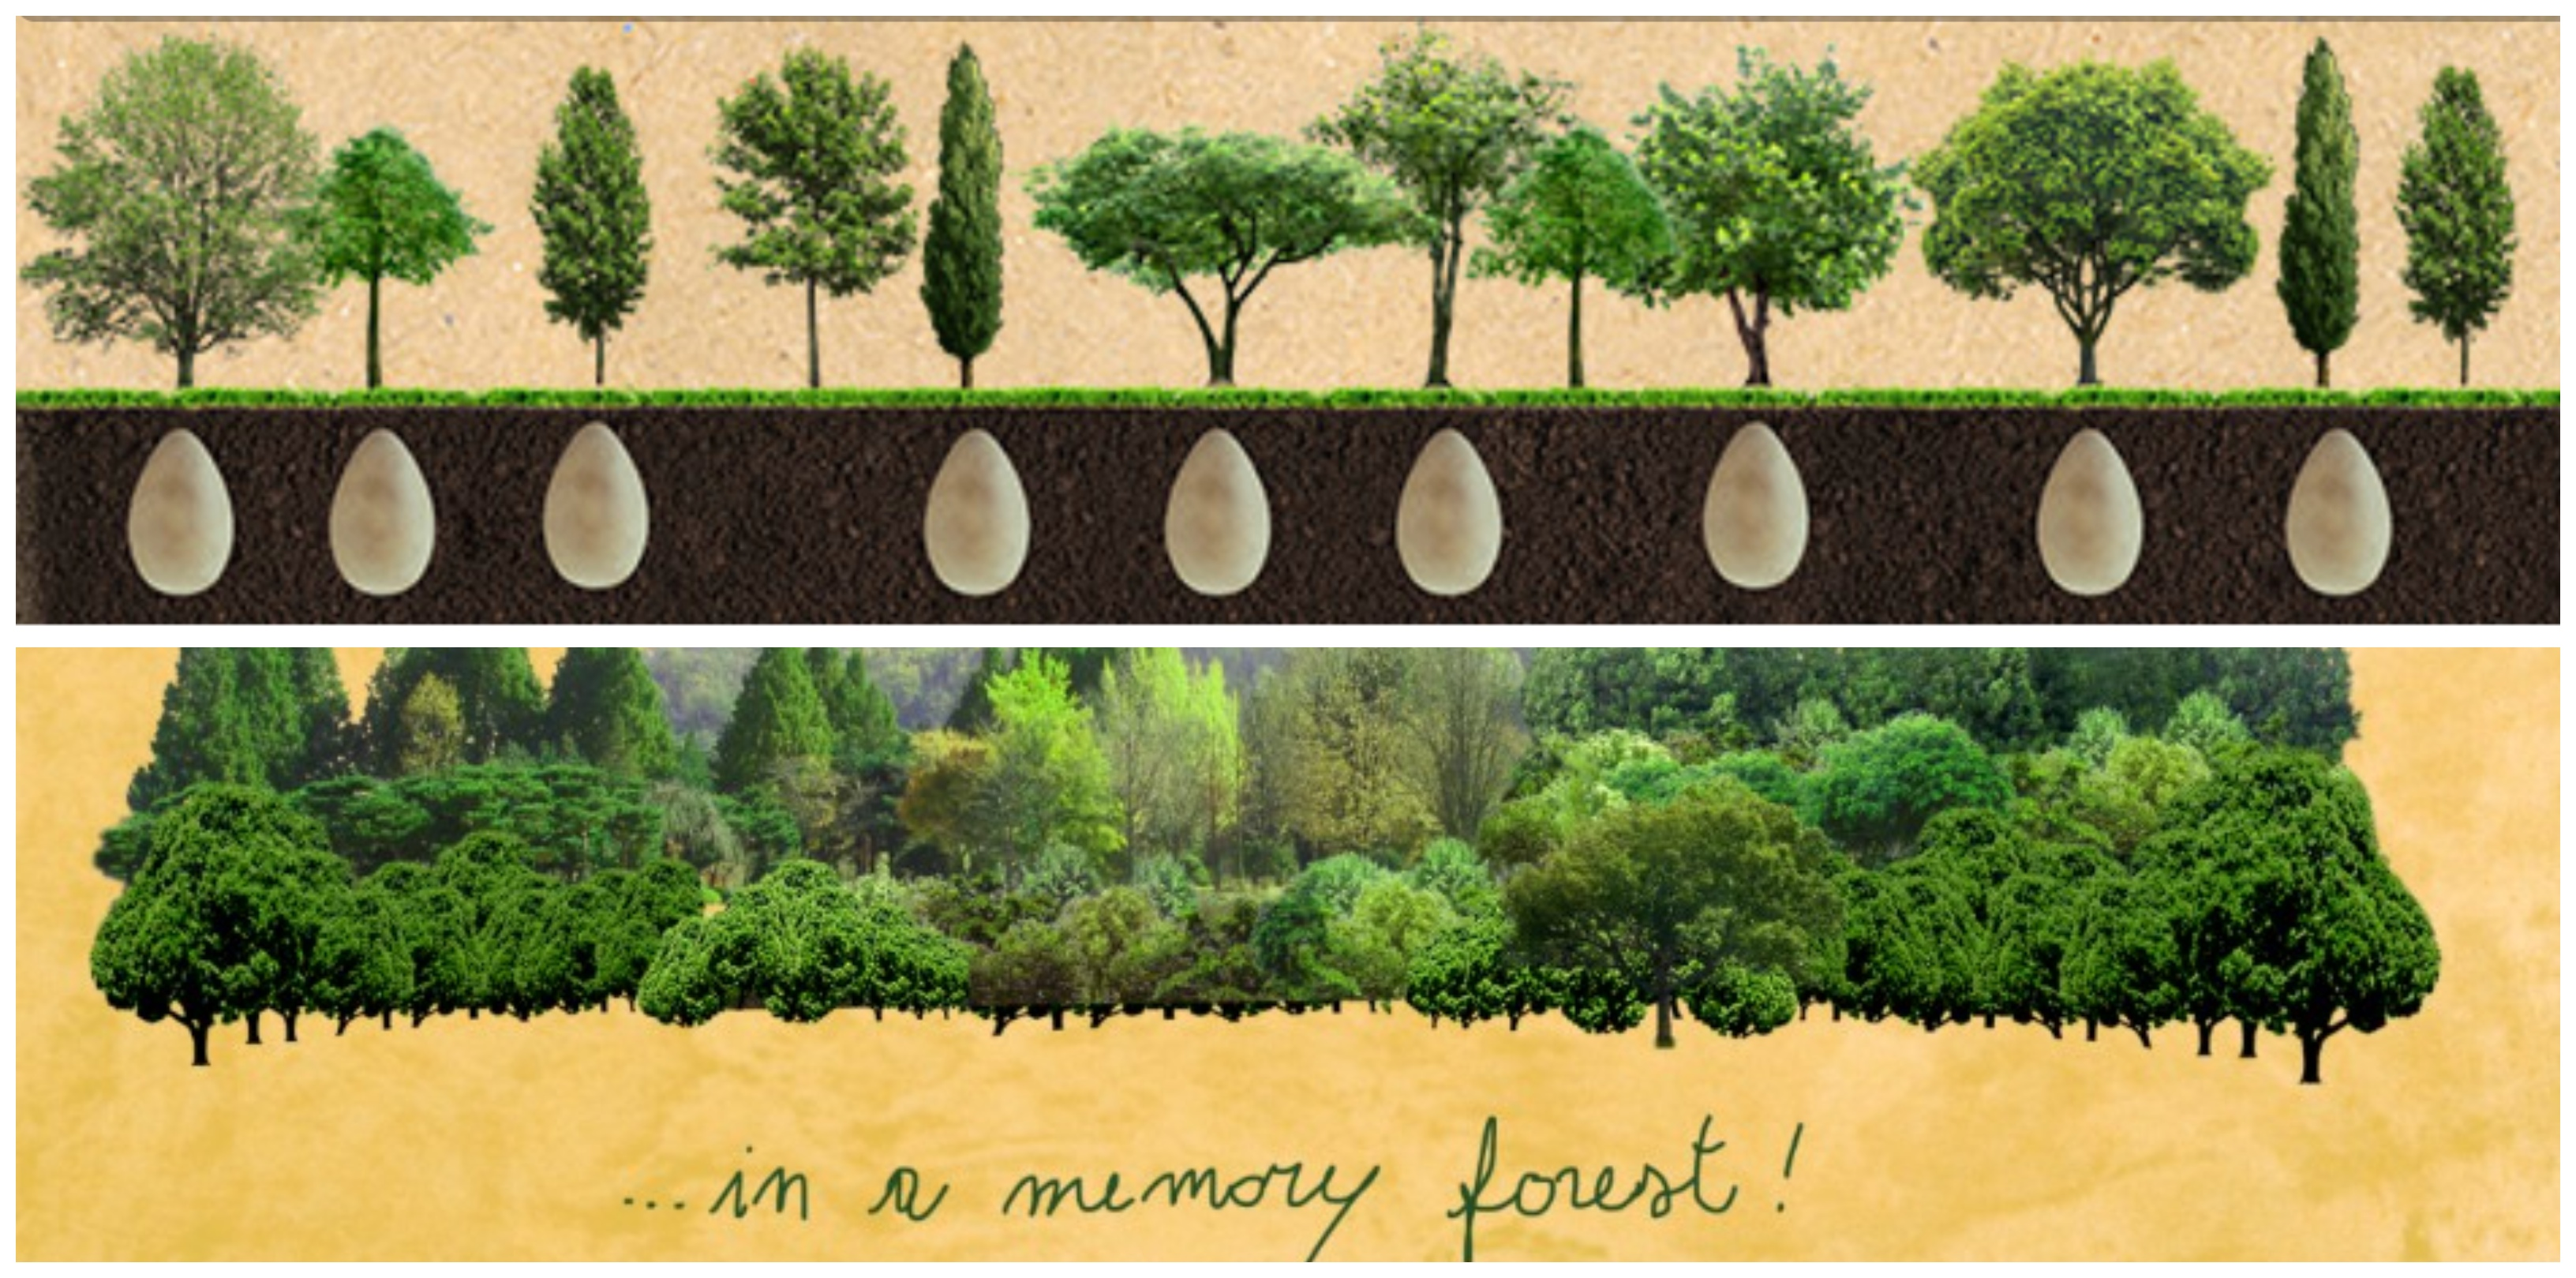 A tree takes between 10 and 40 years to reach maturity, while the coffin is generally of use for three days.